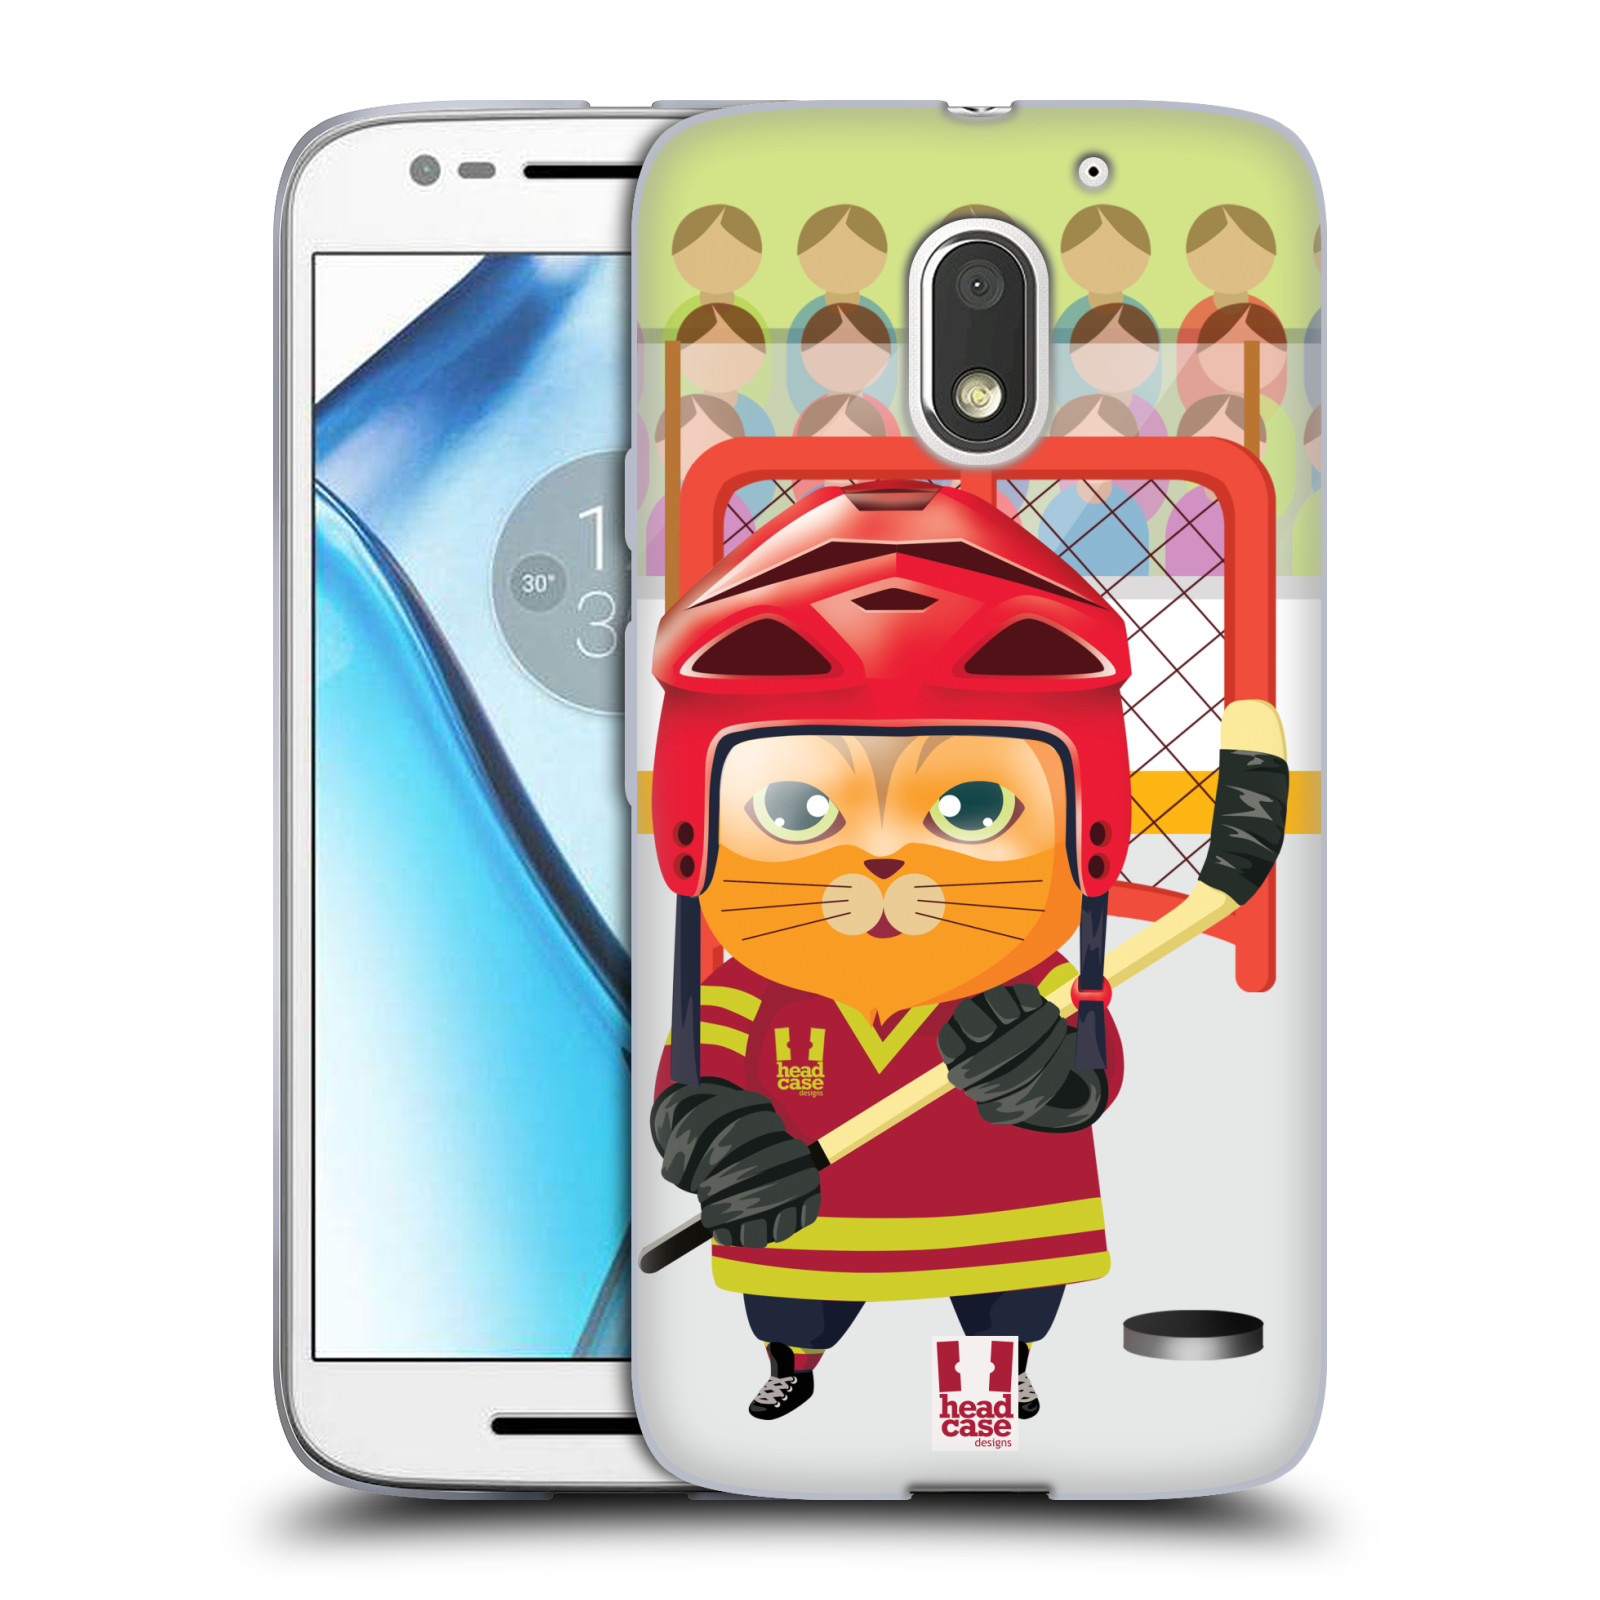 HEAD-CASE-DESIGNS-COOL-CATS-SOFT-GEL-CASE-FOR-MOTOROLA-MOTO-E3